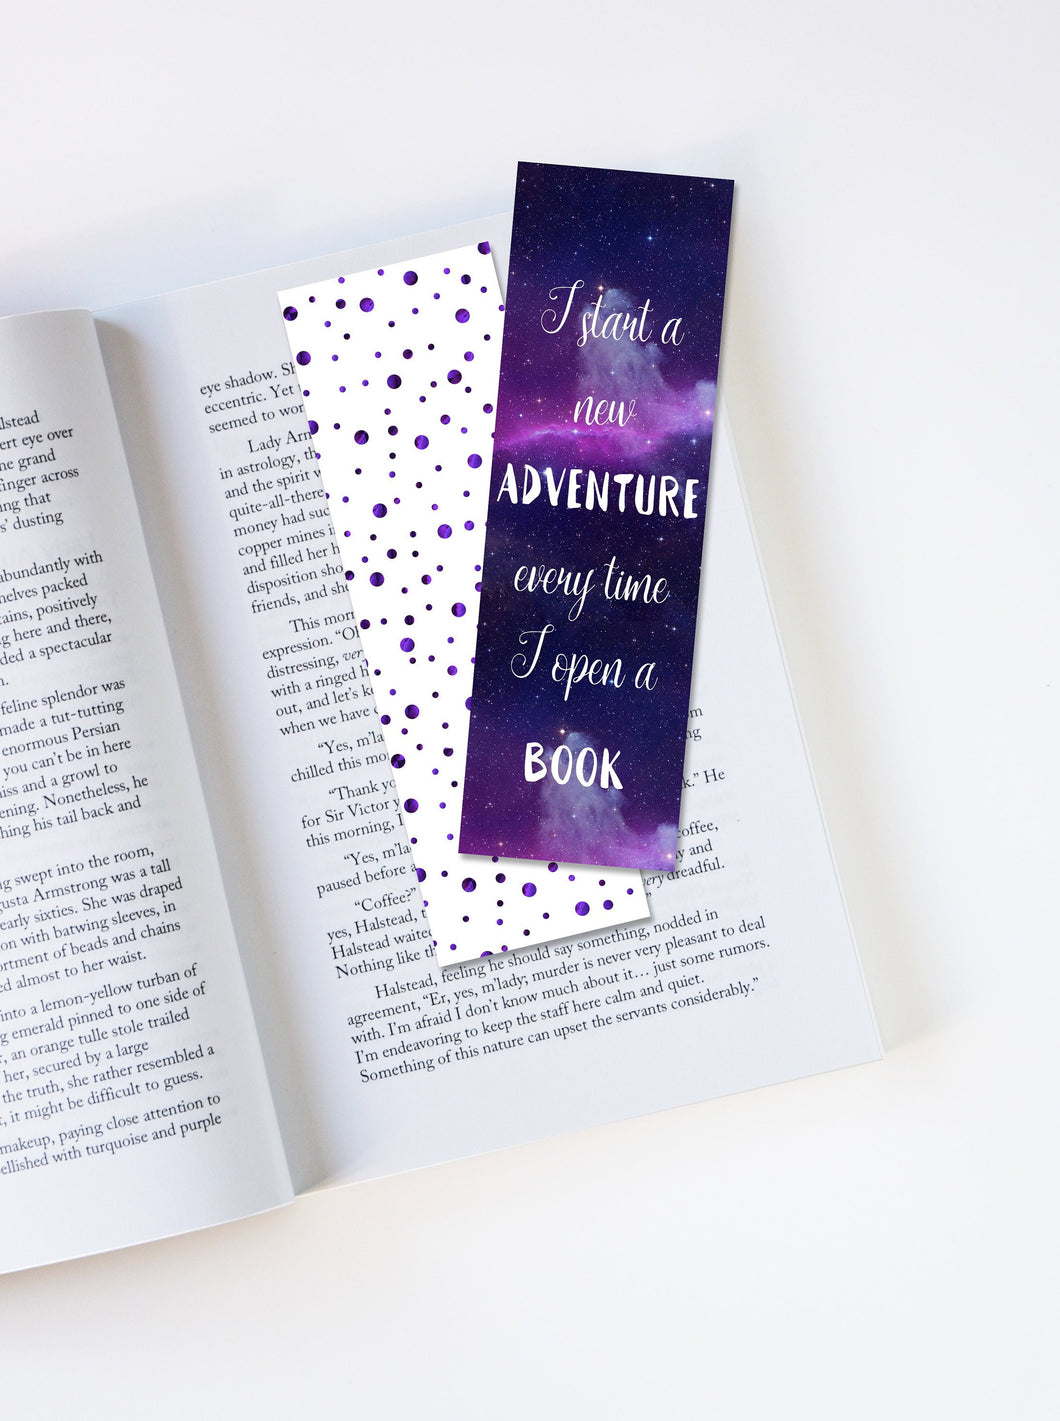 I Start A New Adventure Every Time I Open A Book Laminated Bookmark